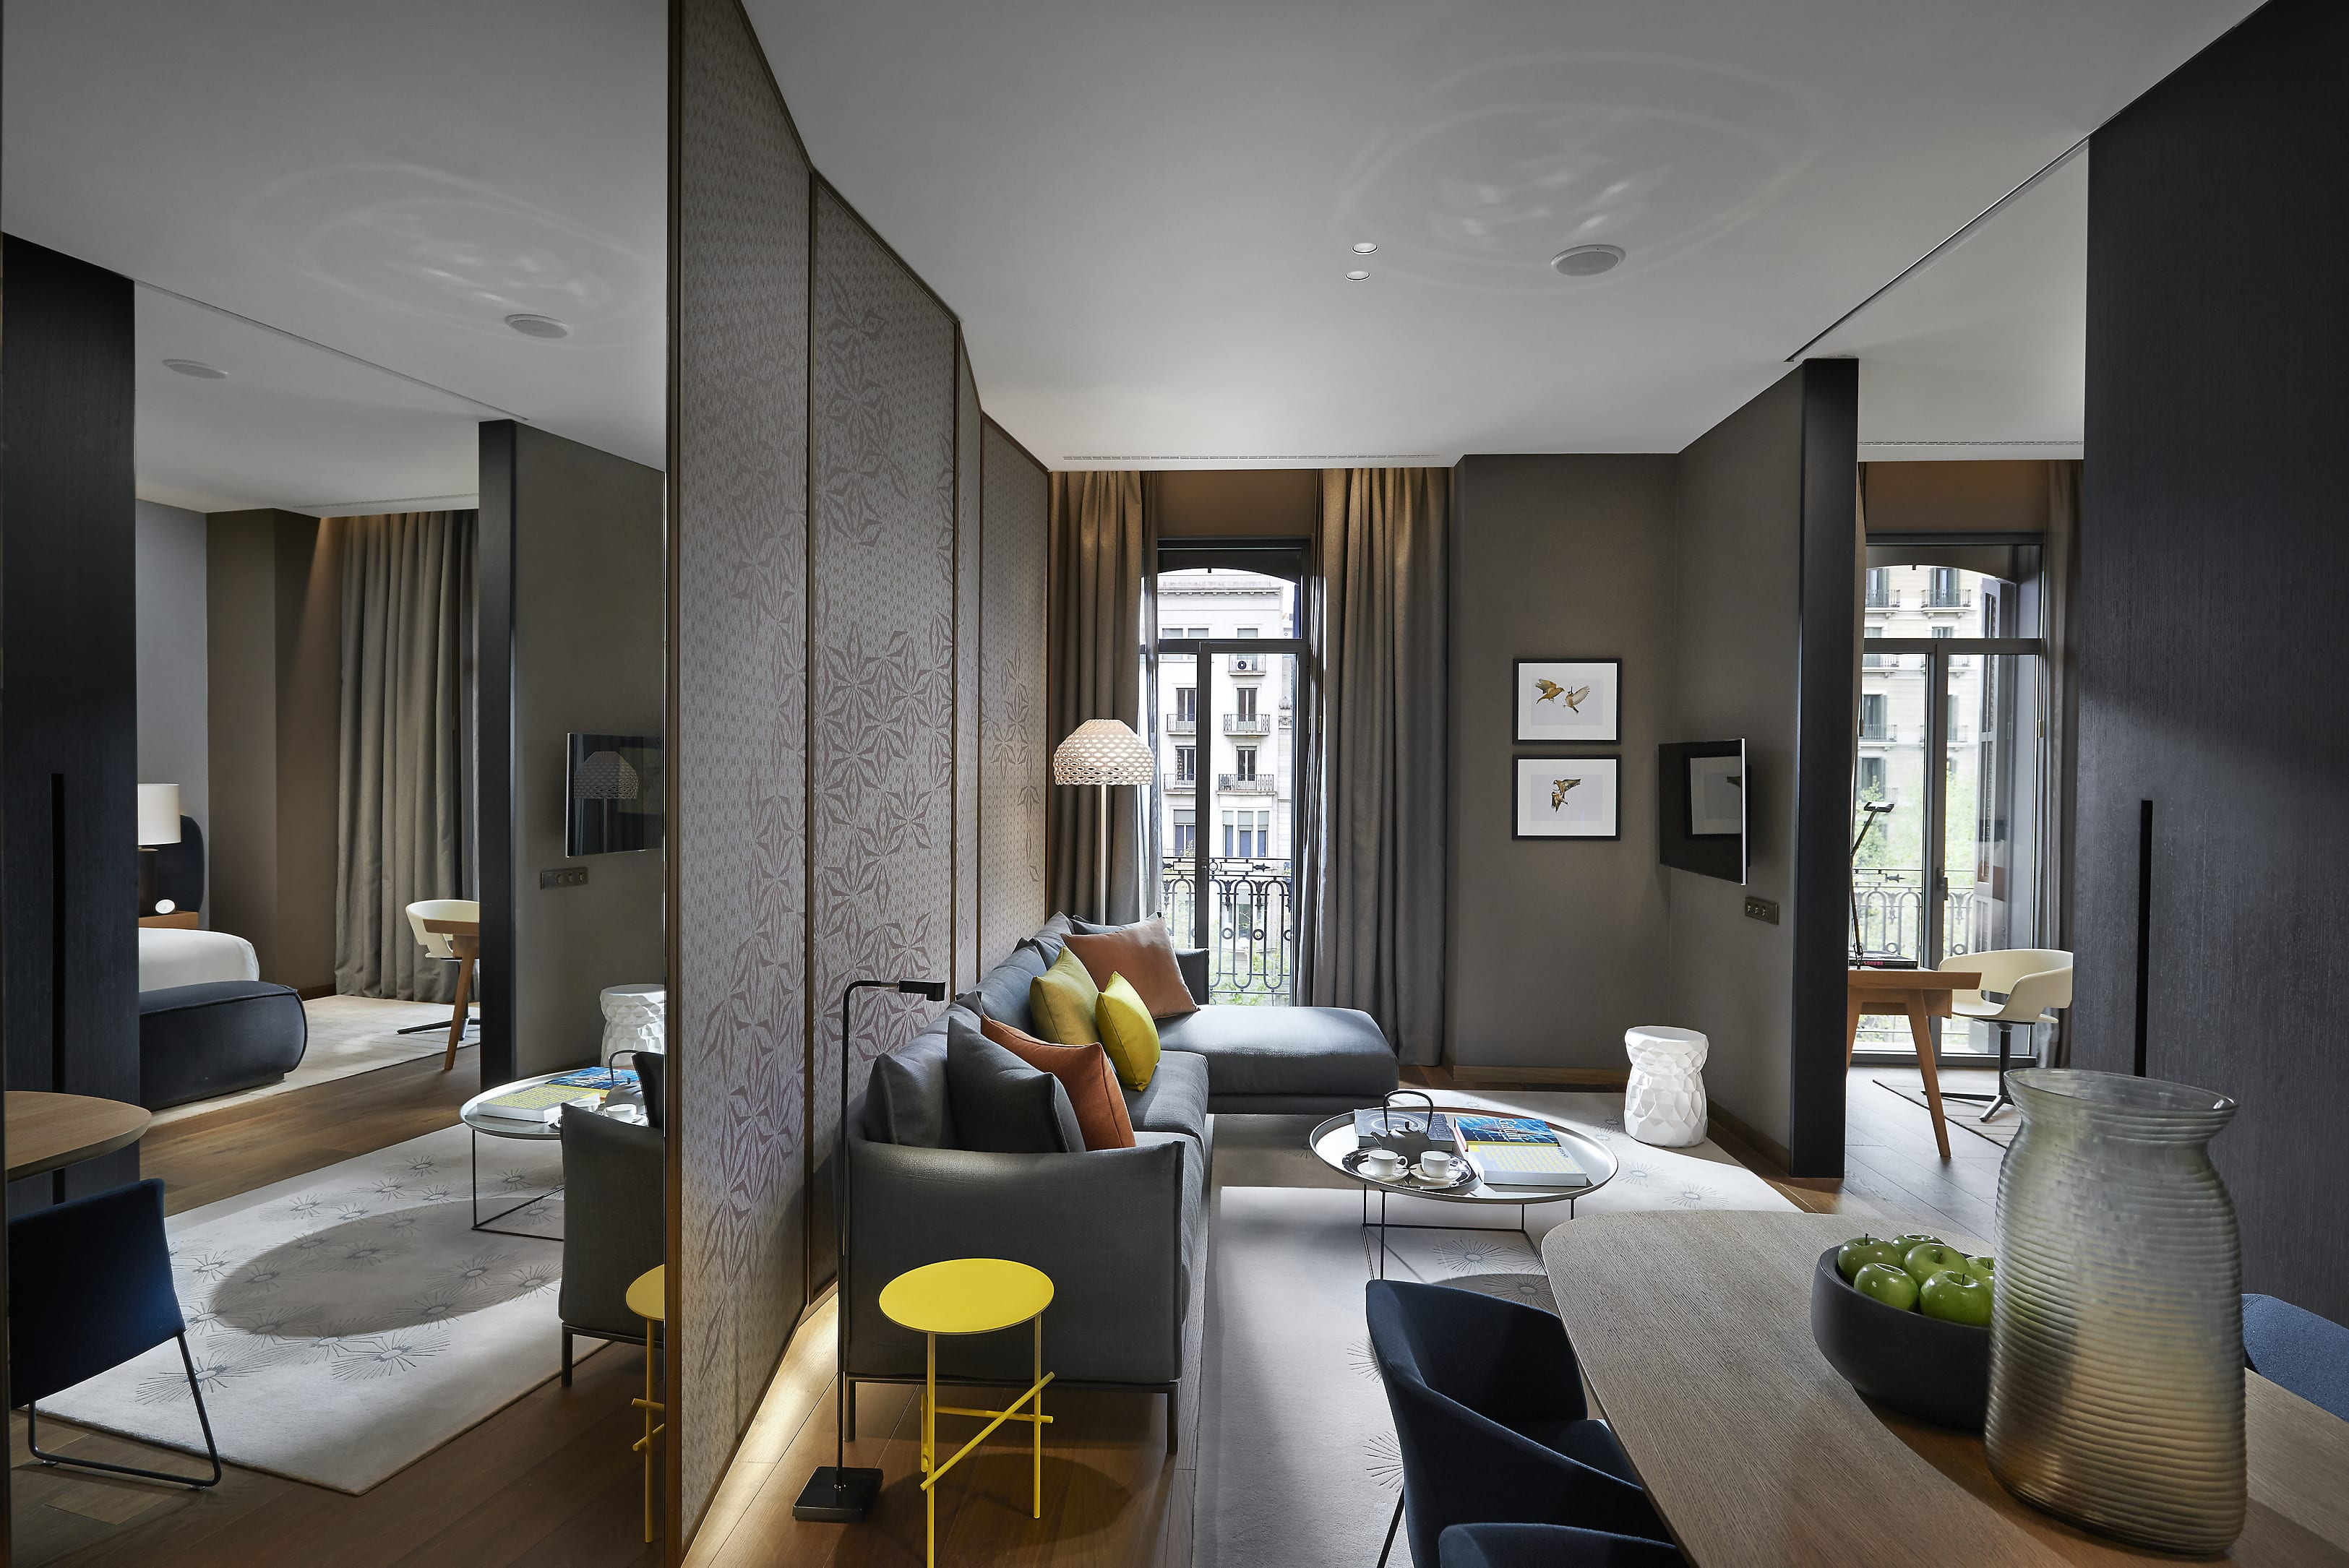 Barcelona hotel photo gallery mandarin oriental hotel for Design hotel barcelona